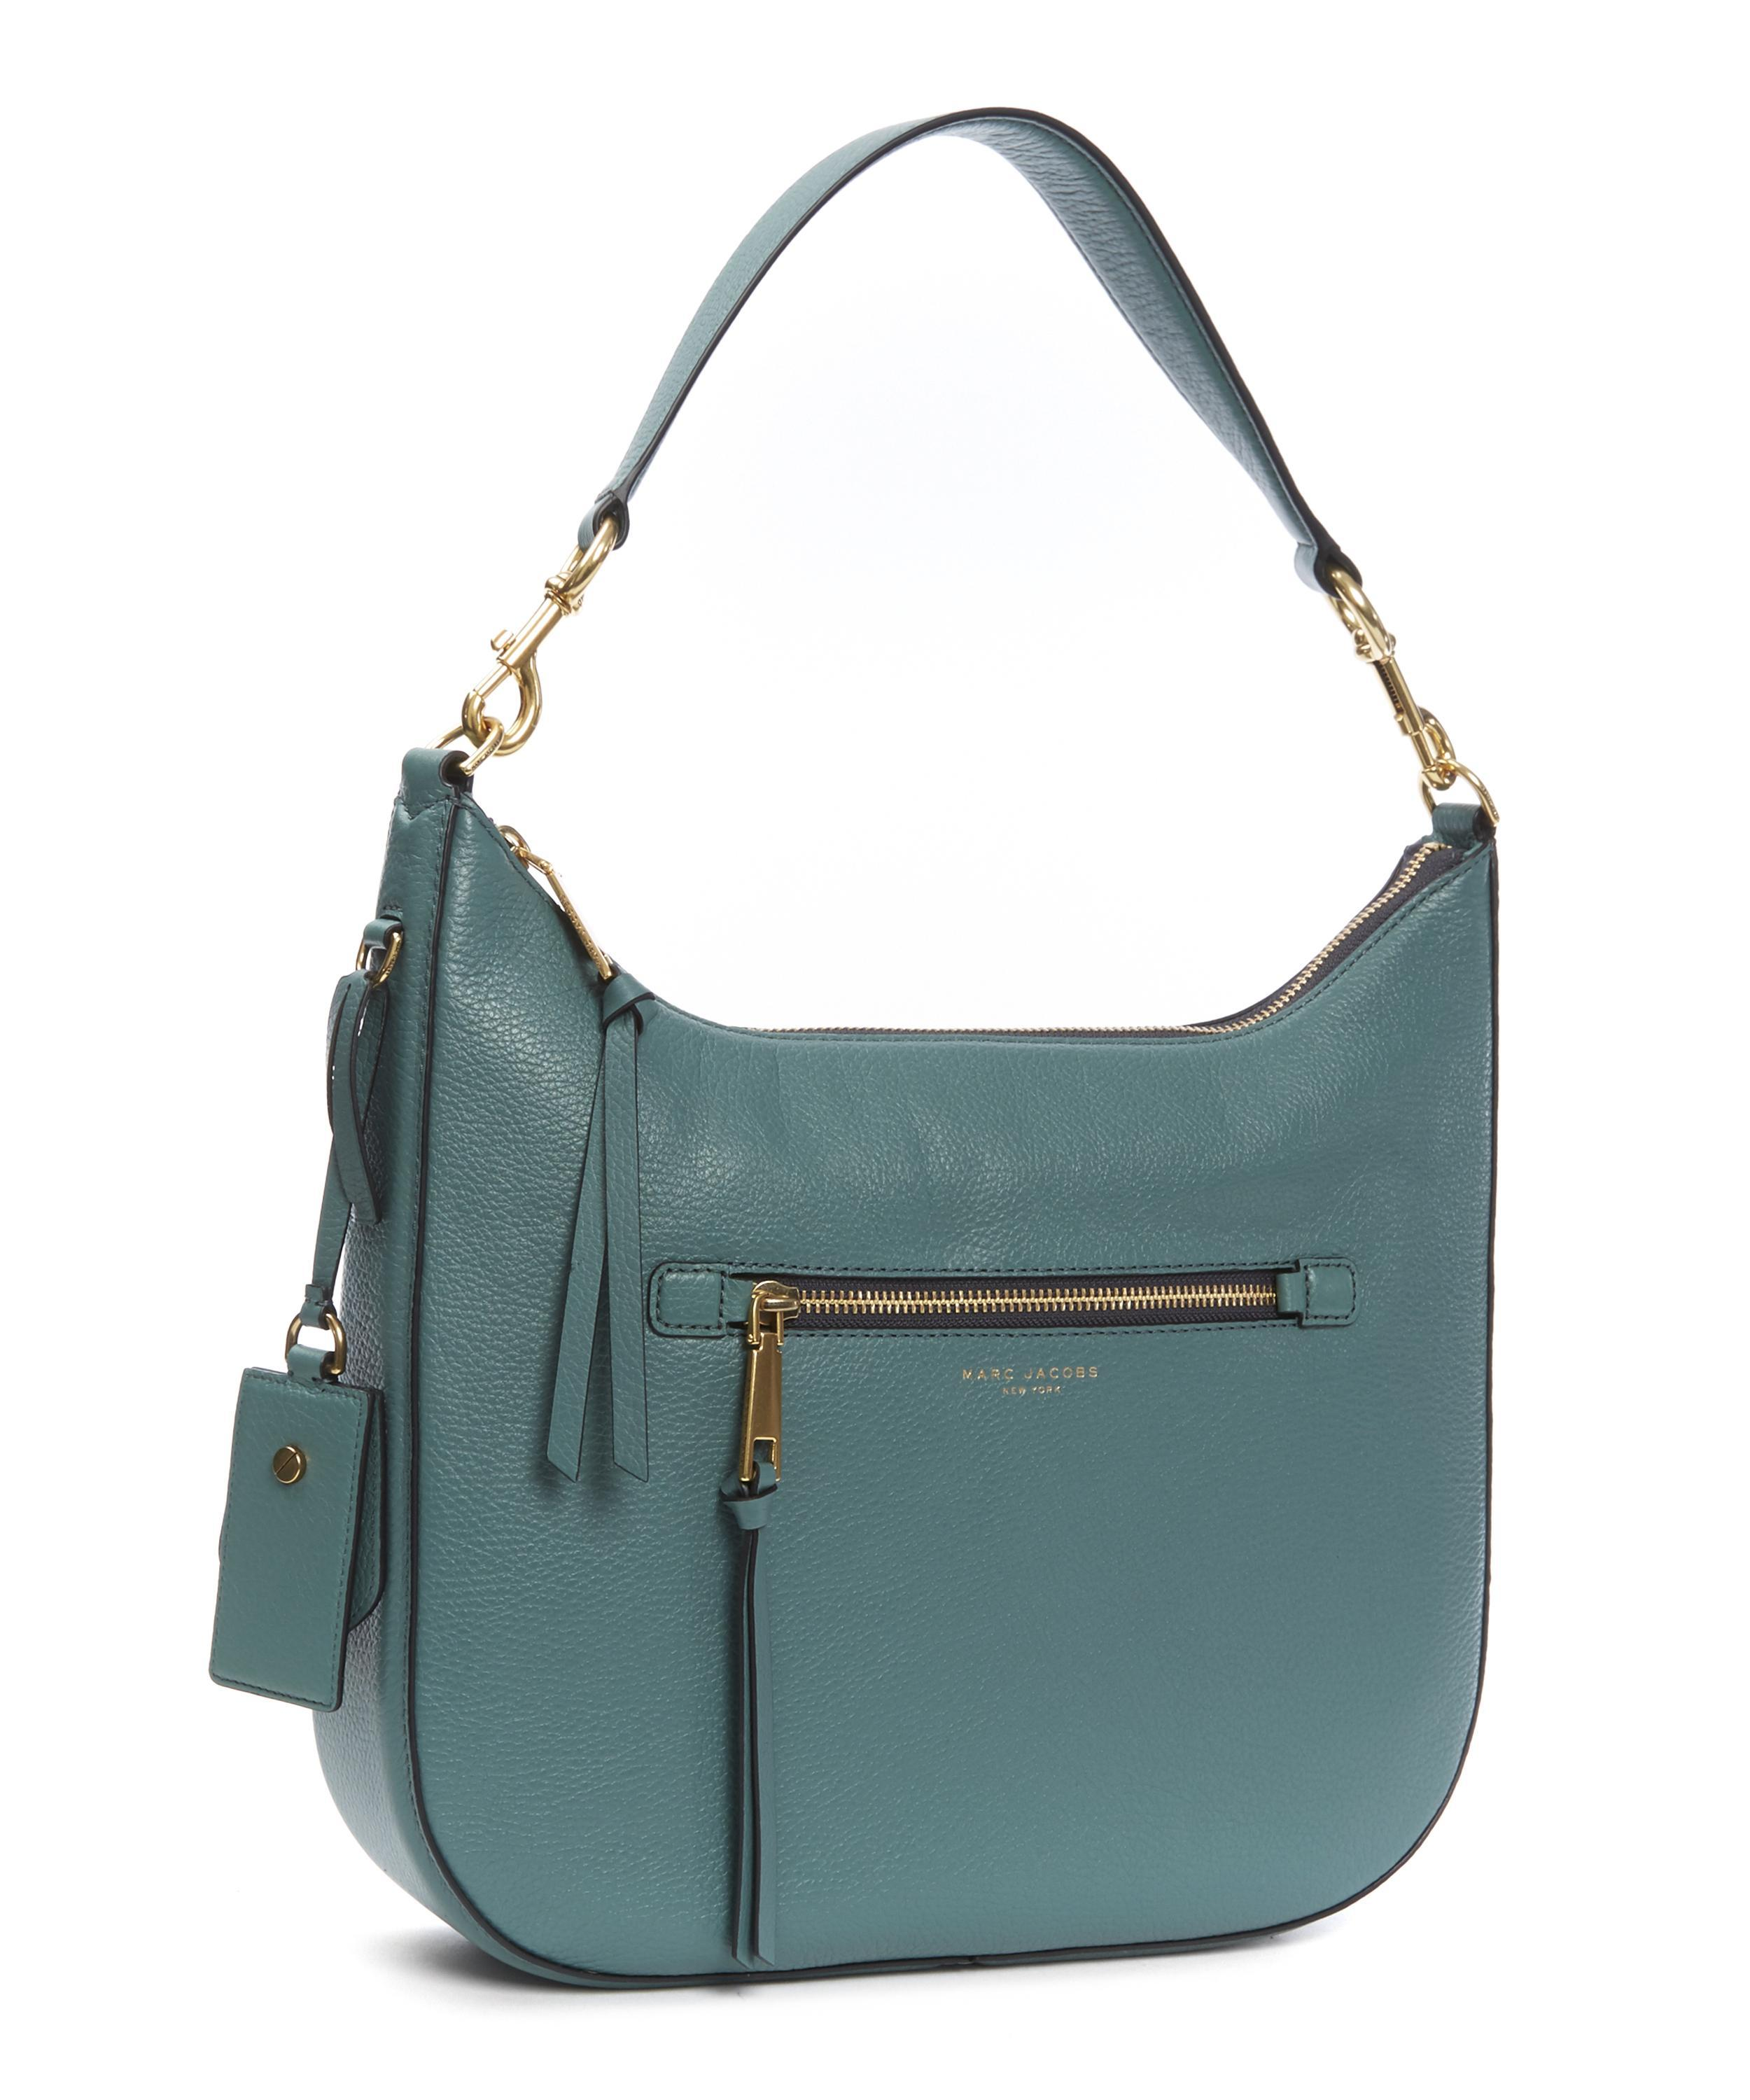 a113c9186 Marc Jacobs Recruit Leather Hobo Shoulder Bag in Blue - Lyst